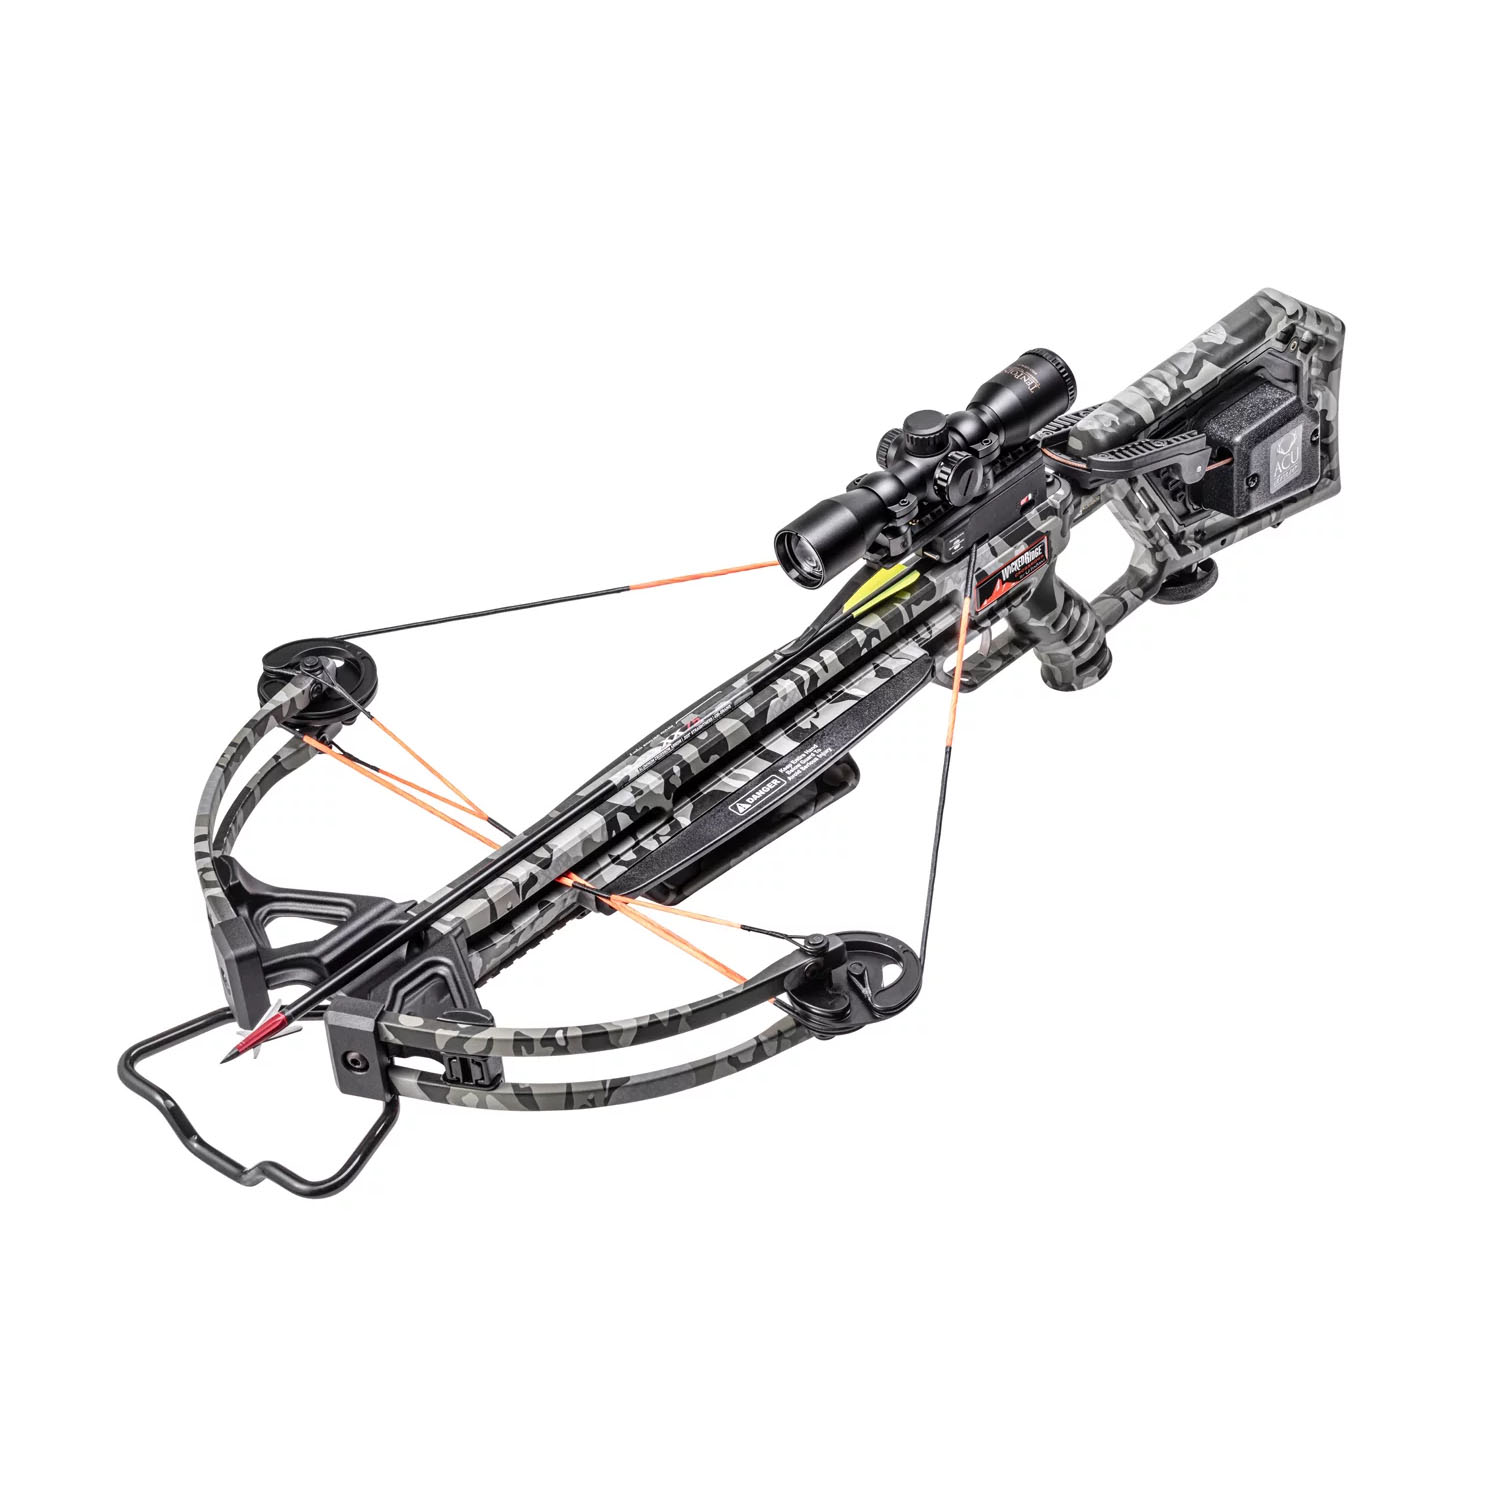 Wicked Ridge Crossbow Invader 400 Acudraw With Pro View